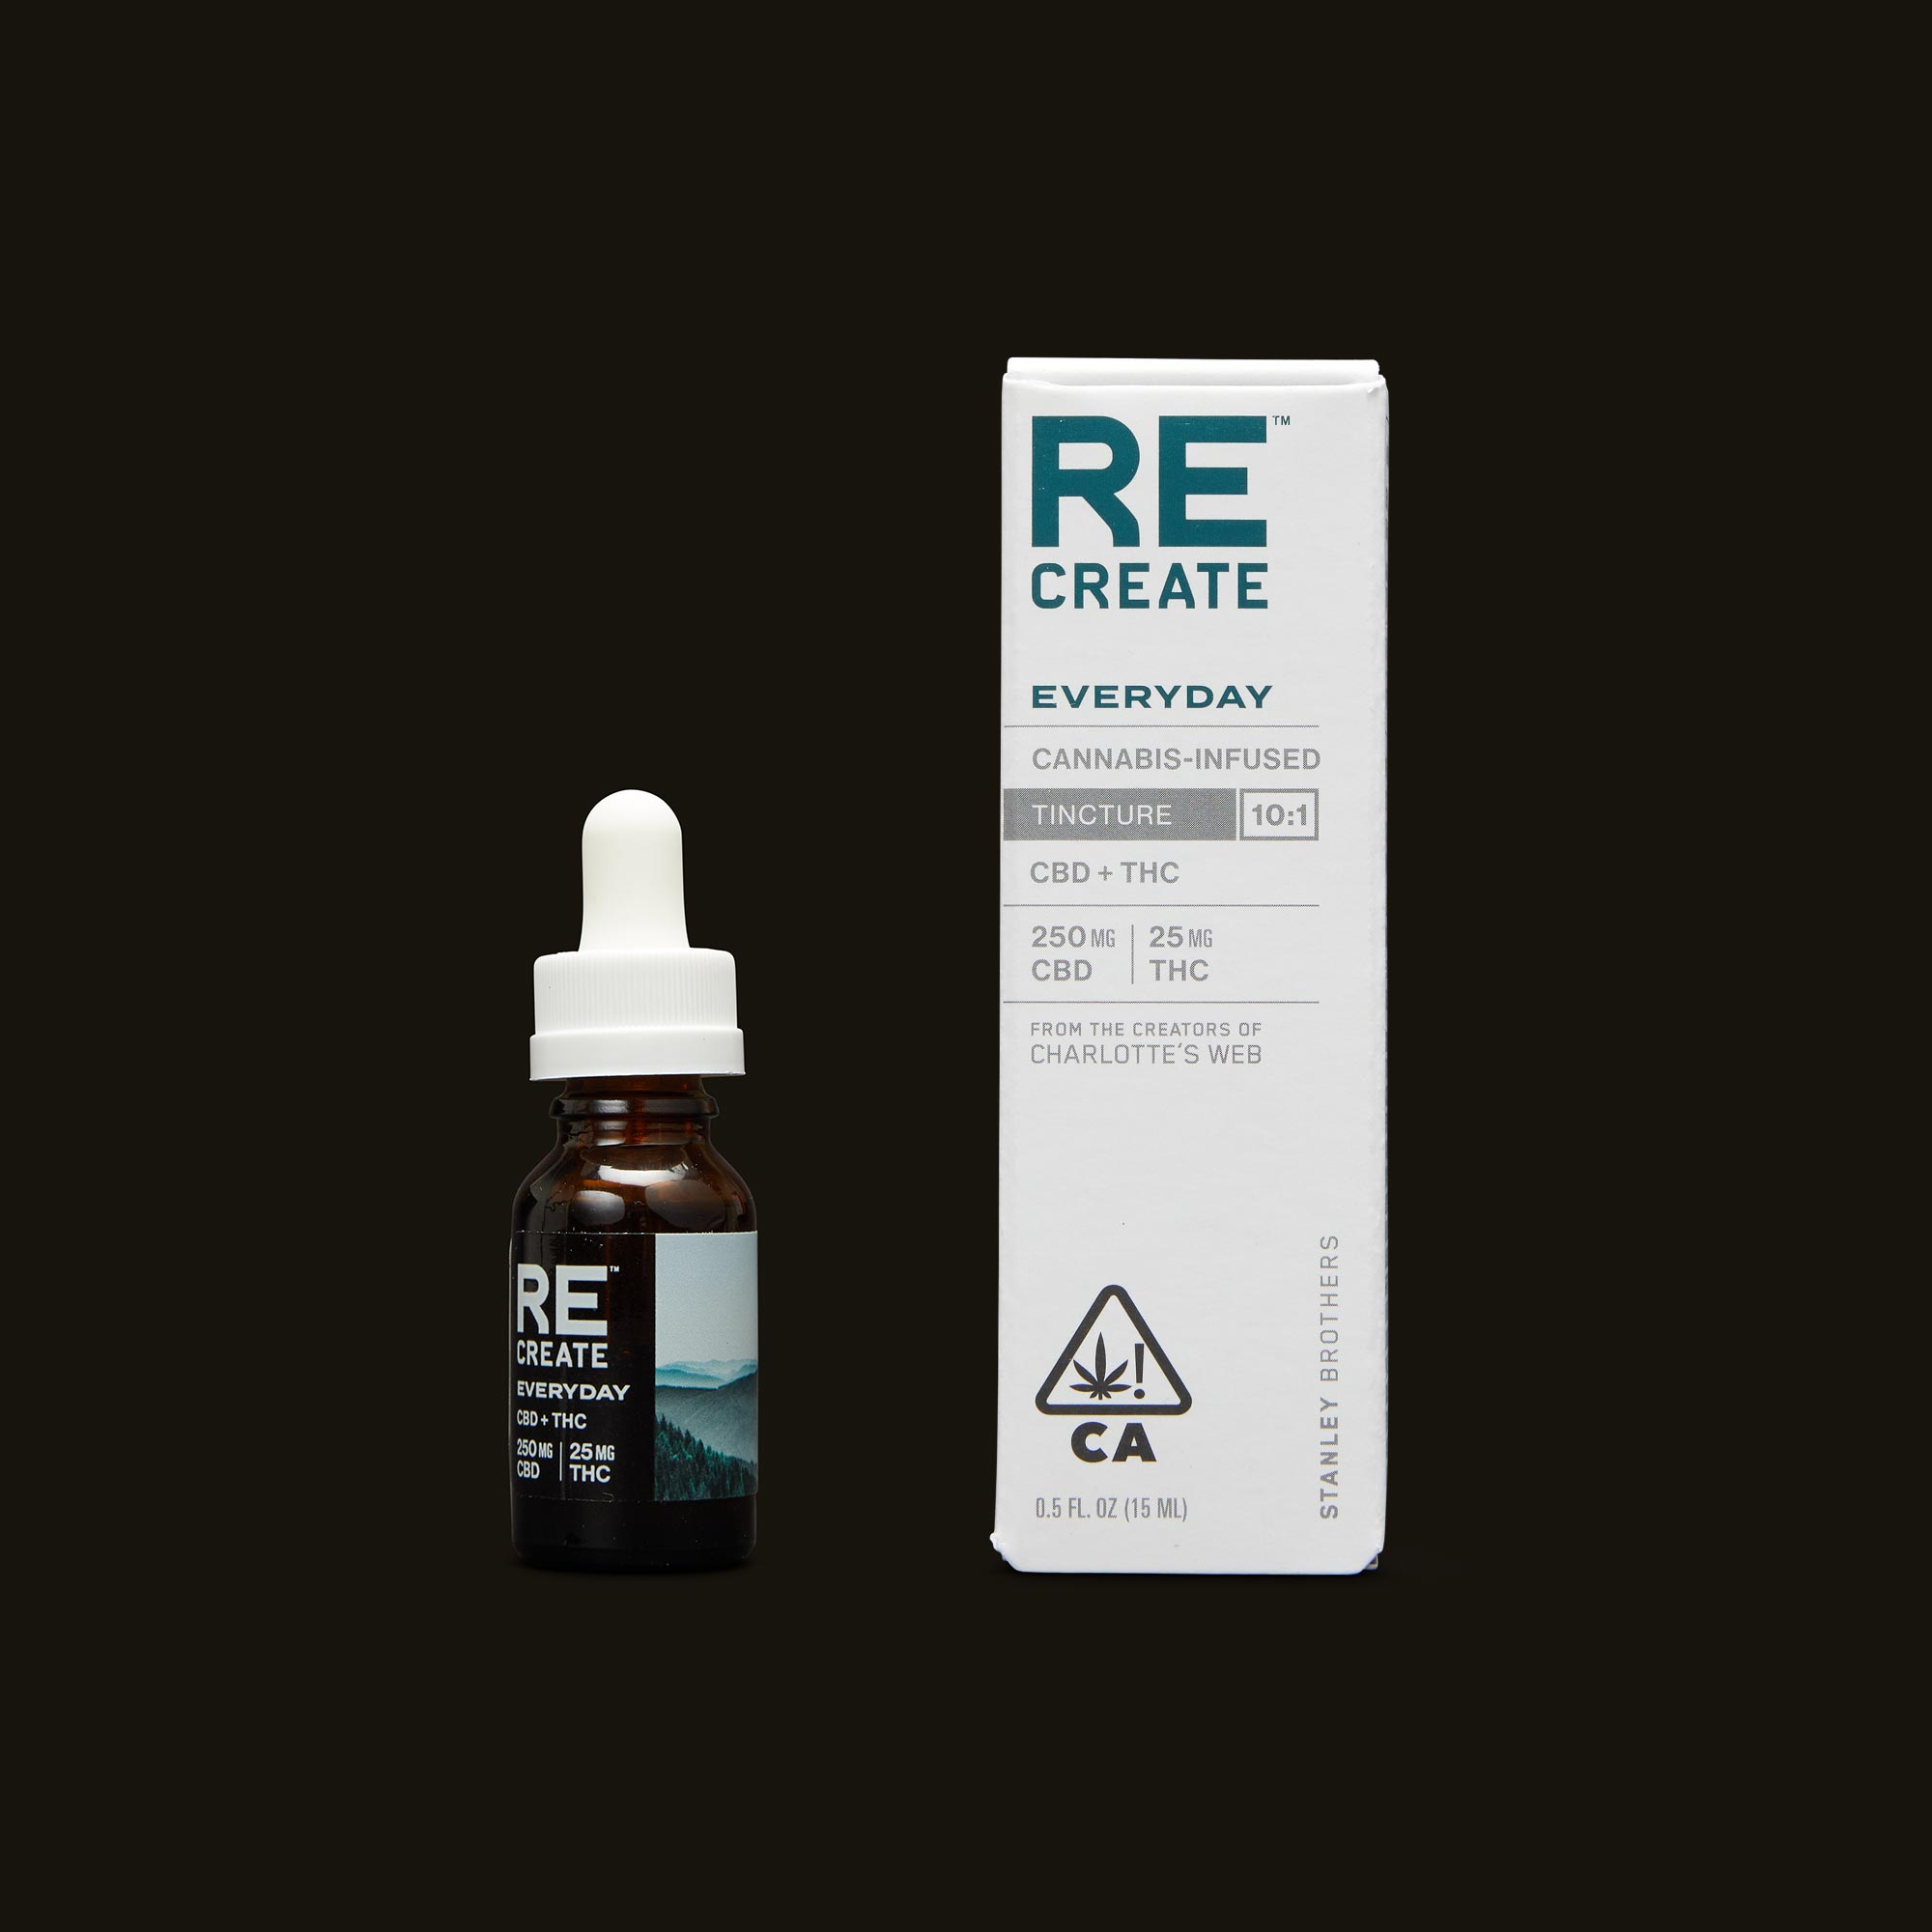 ReCreate Everyday Tincture - 15ml Tincture and Packaging